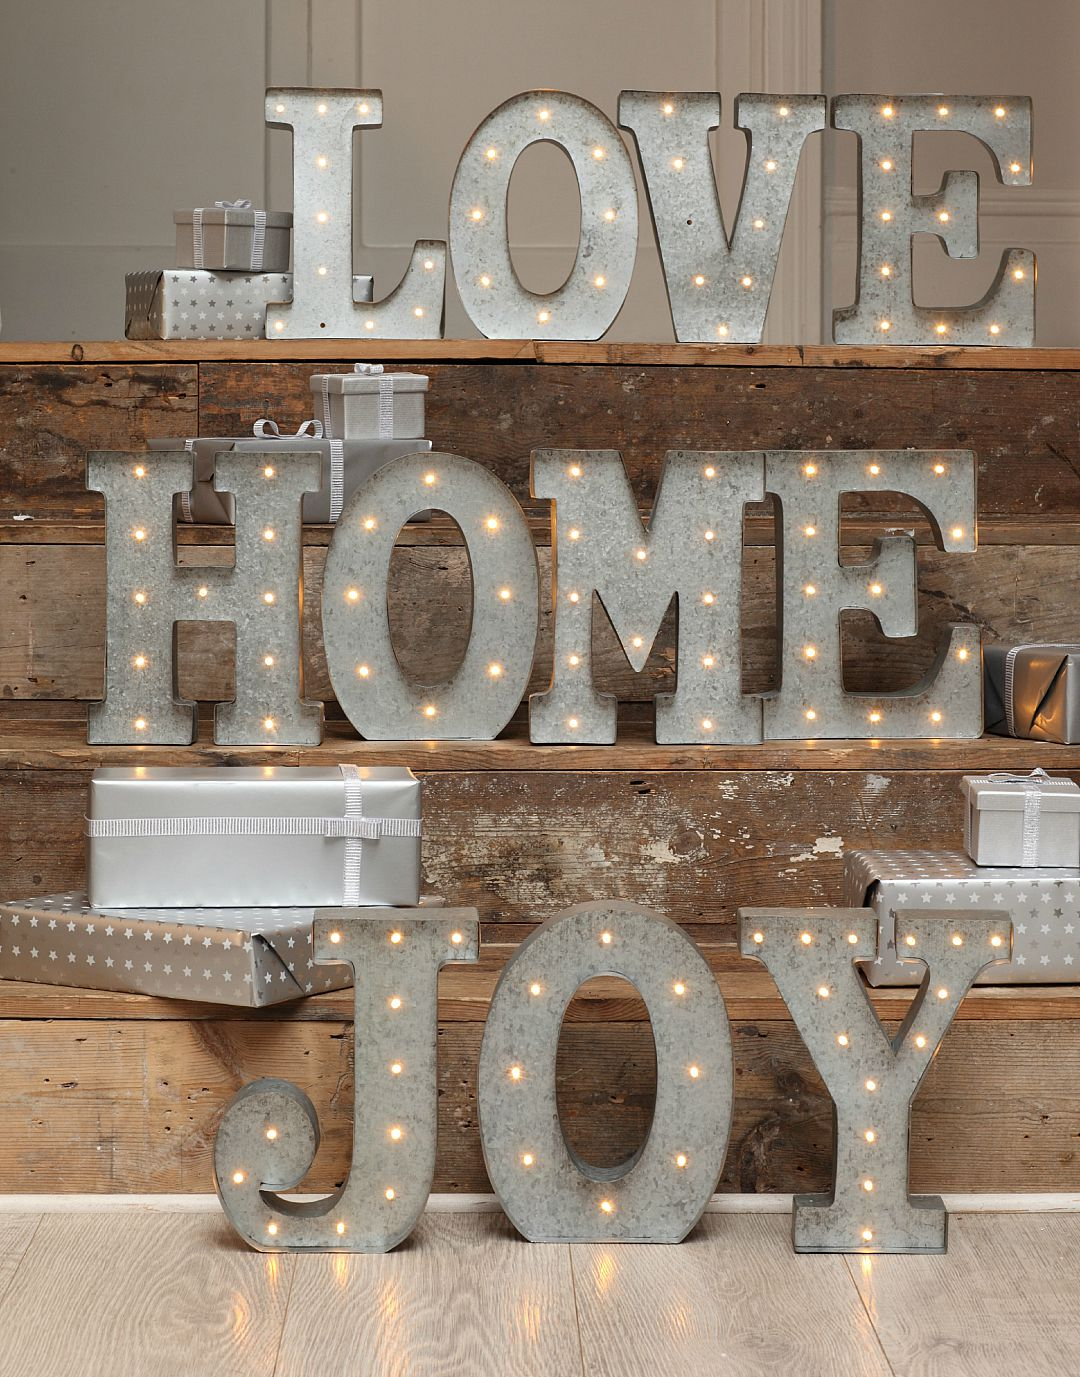 The Handpicked Collection Light Up Signs featured at TheEssexBarn.com